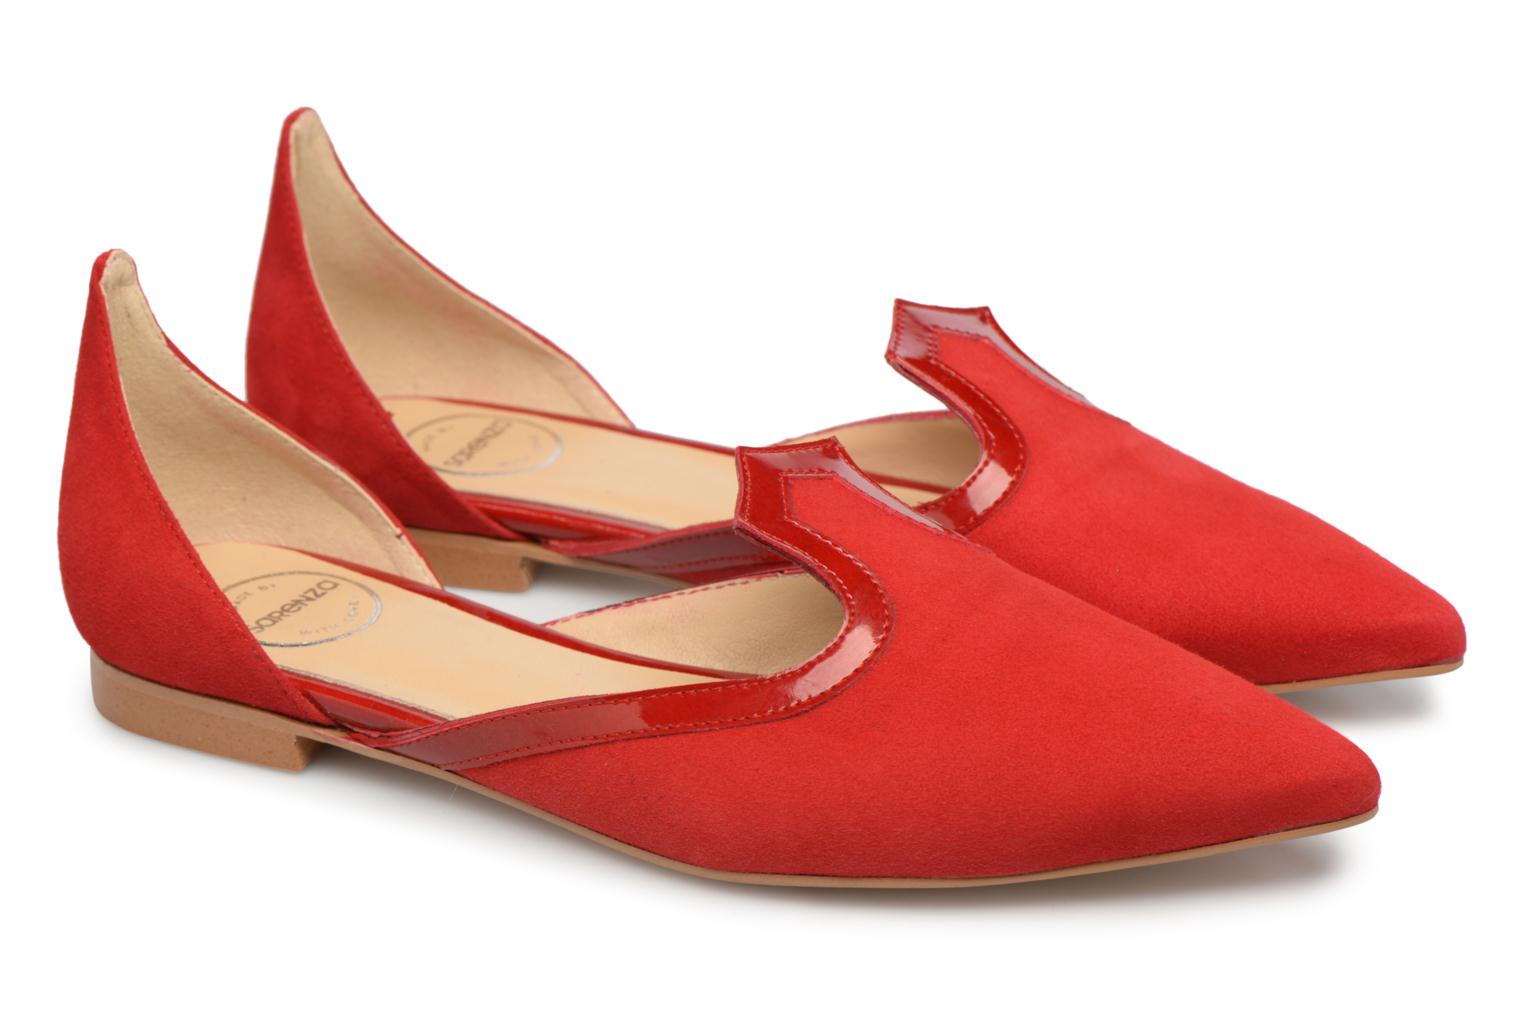 Bombay Babes Ballerines #3 cuir velours rouge